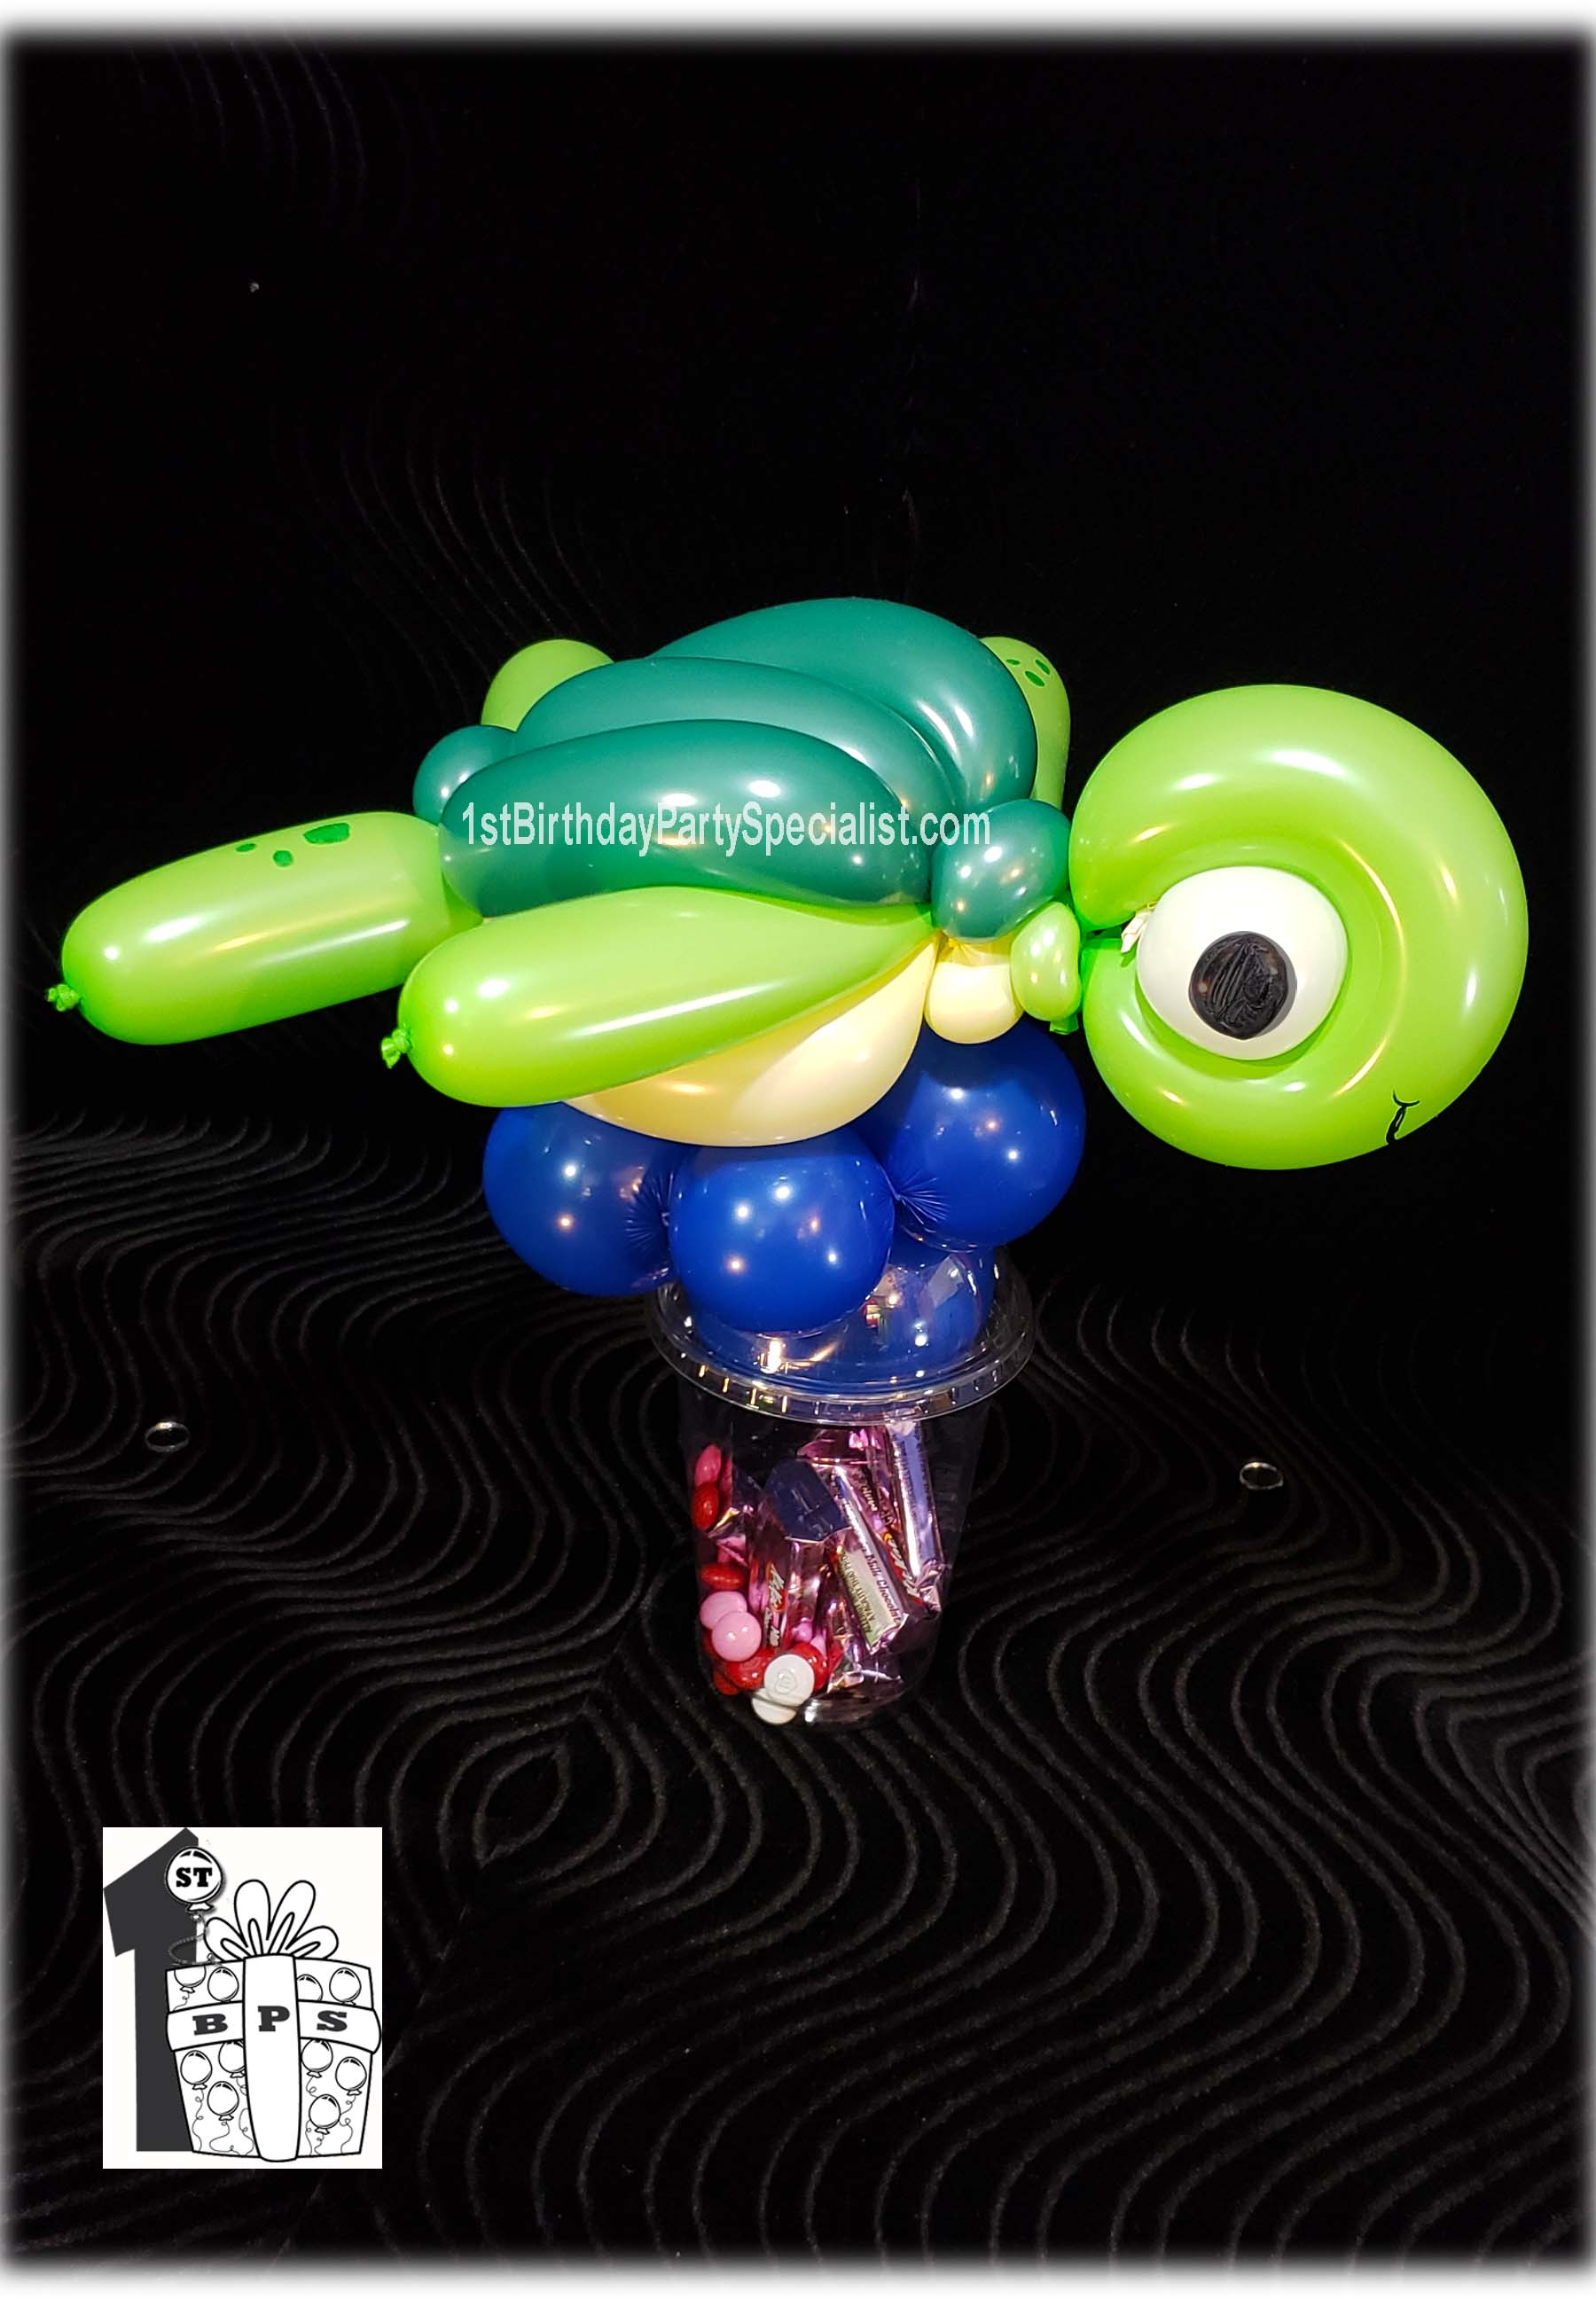 Turtle Balloon Candy Cup for birthday party